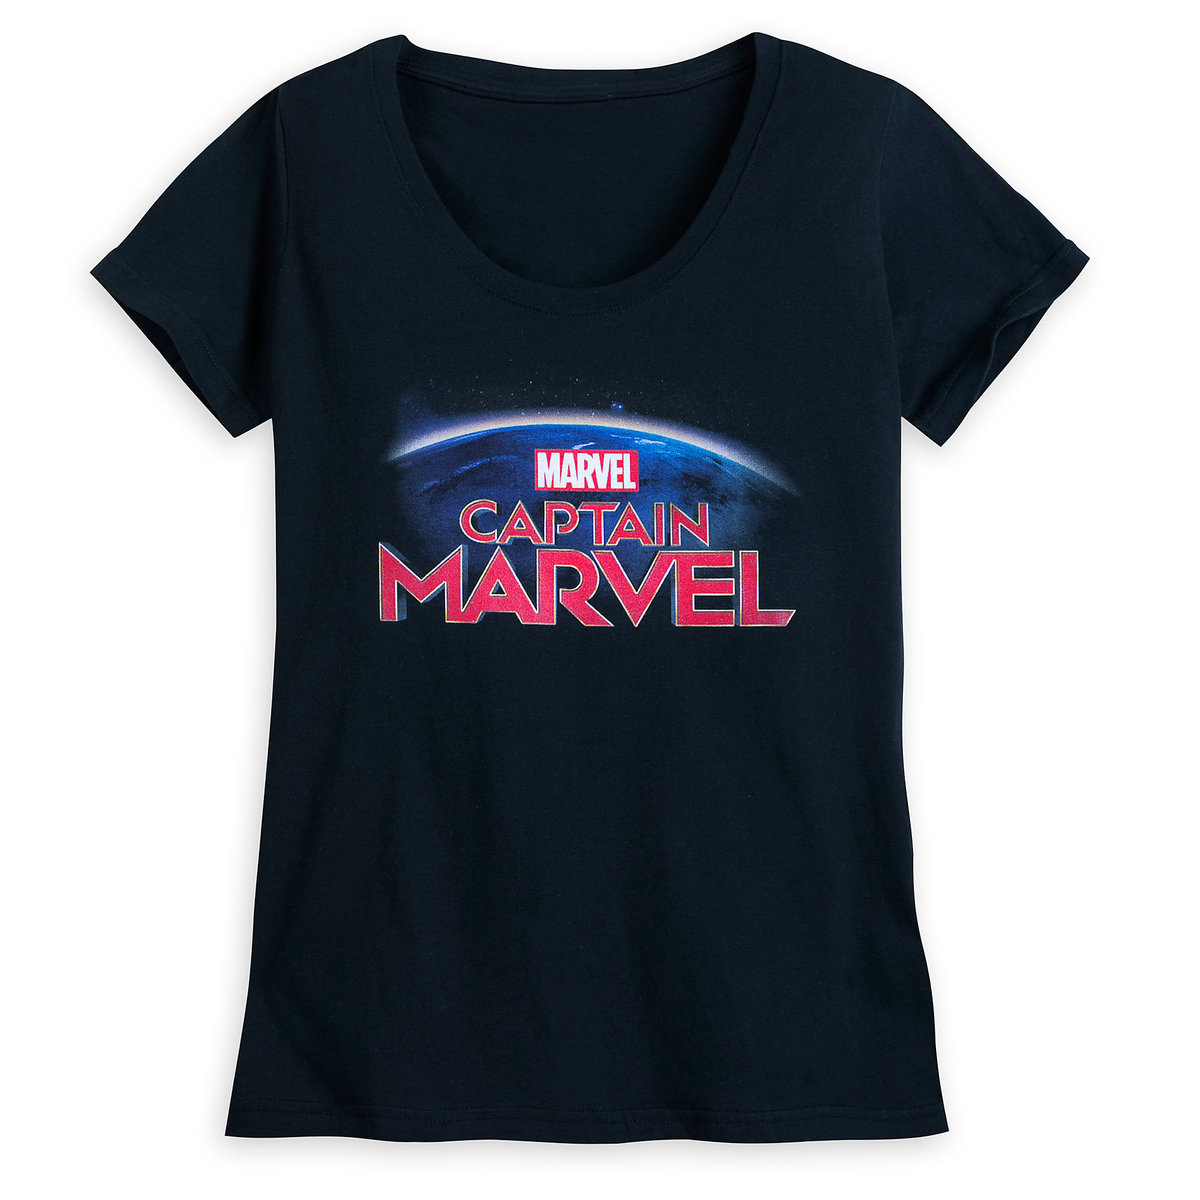 45aff421 Product Image of Marvel's Captain Marvel T-Shirt for Women # 1